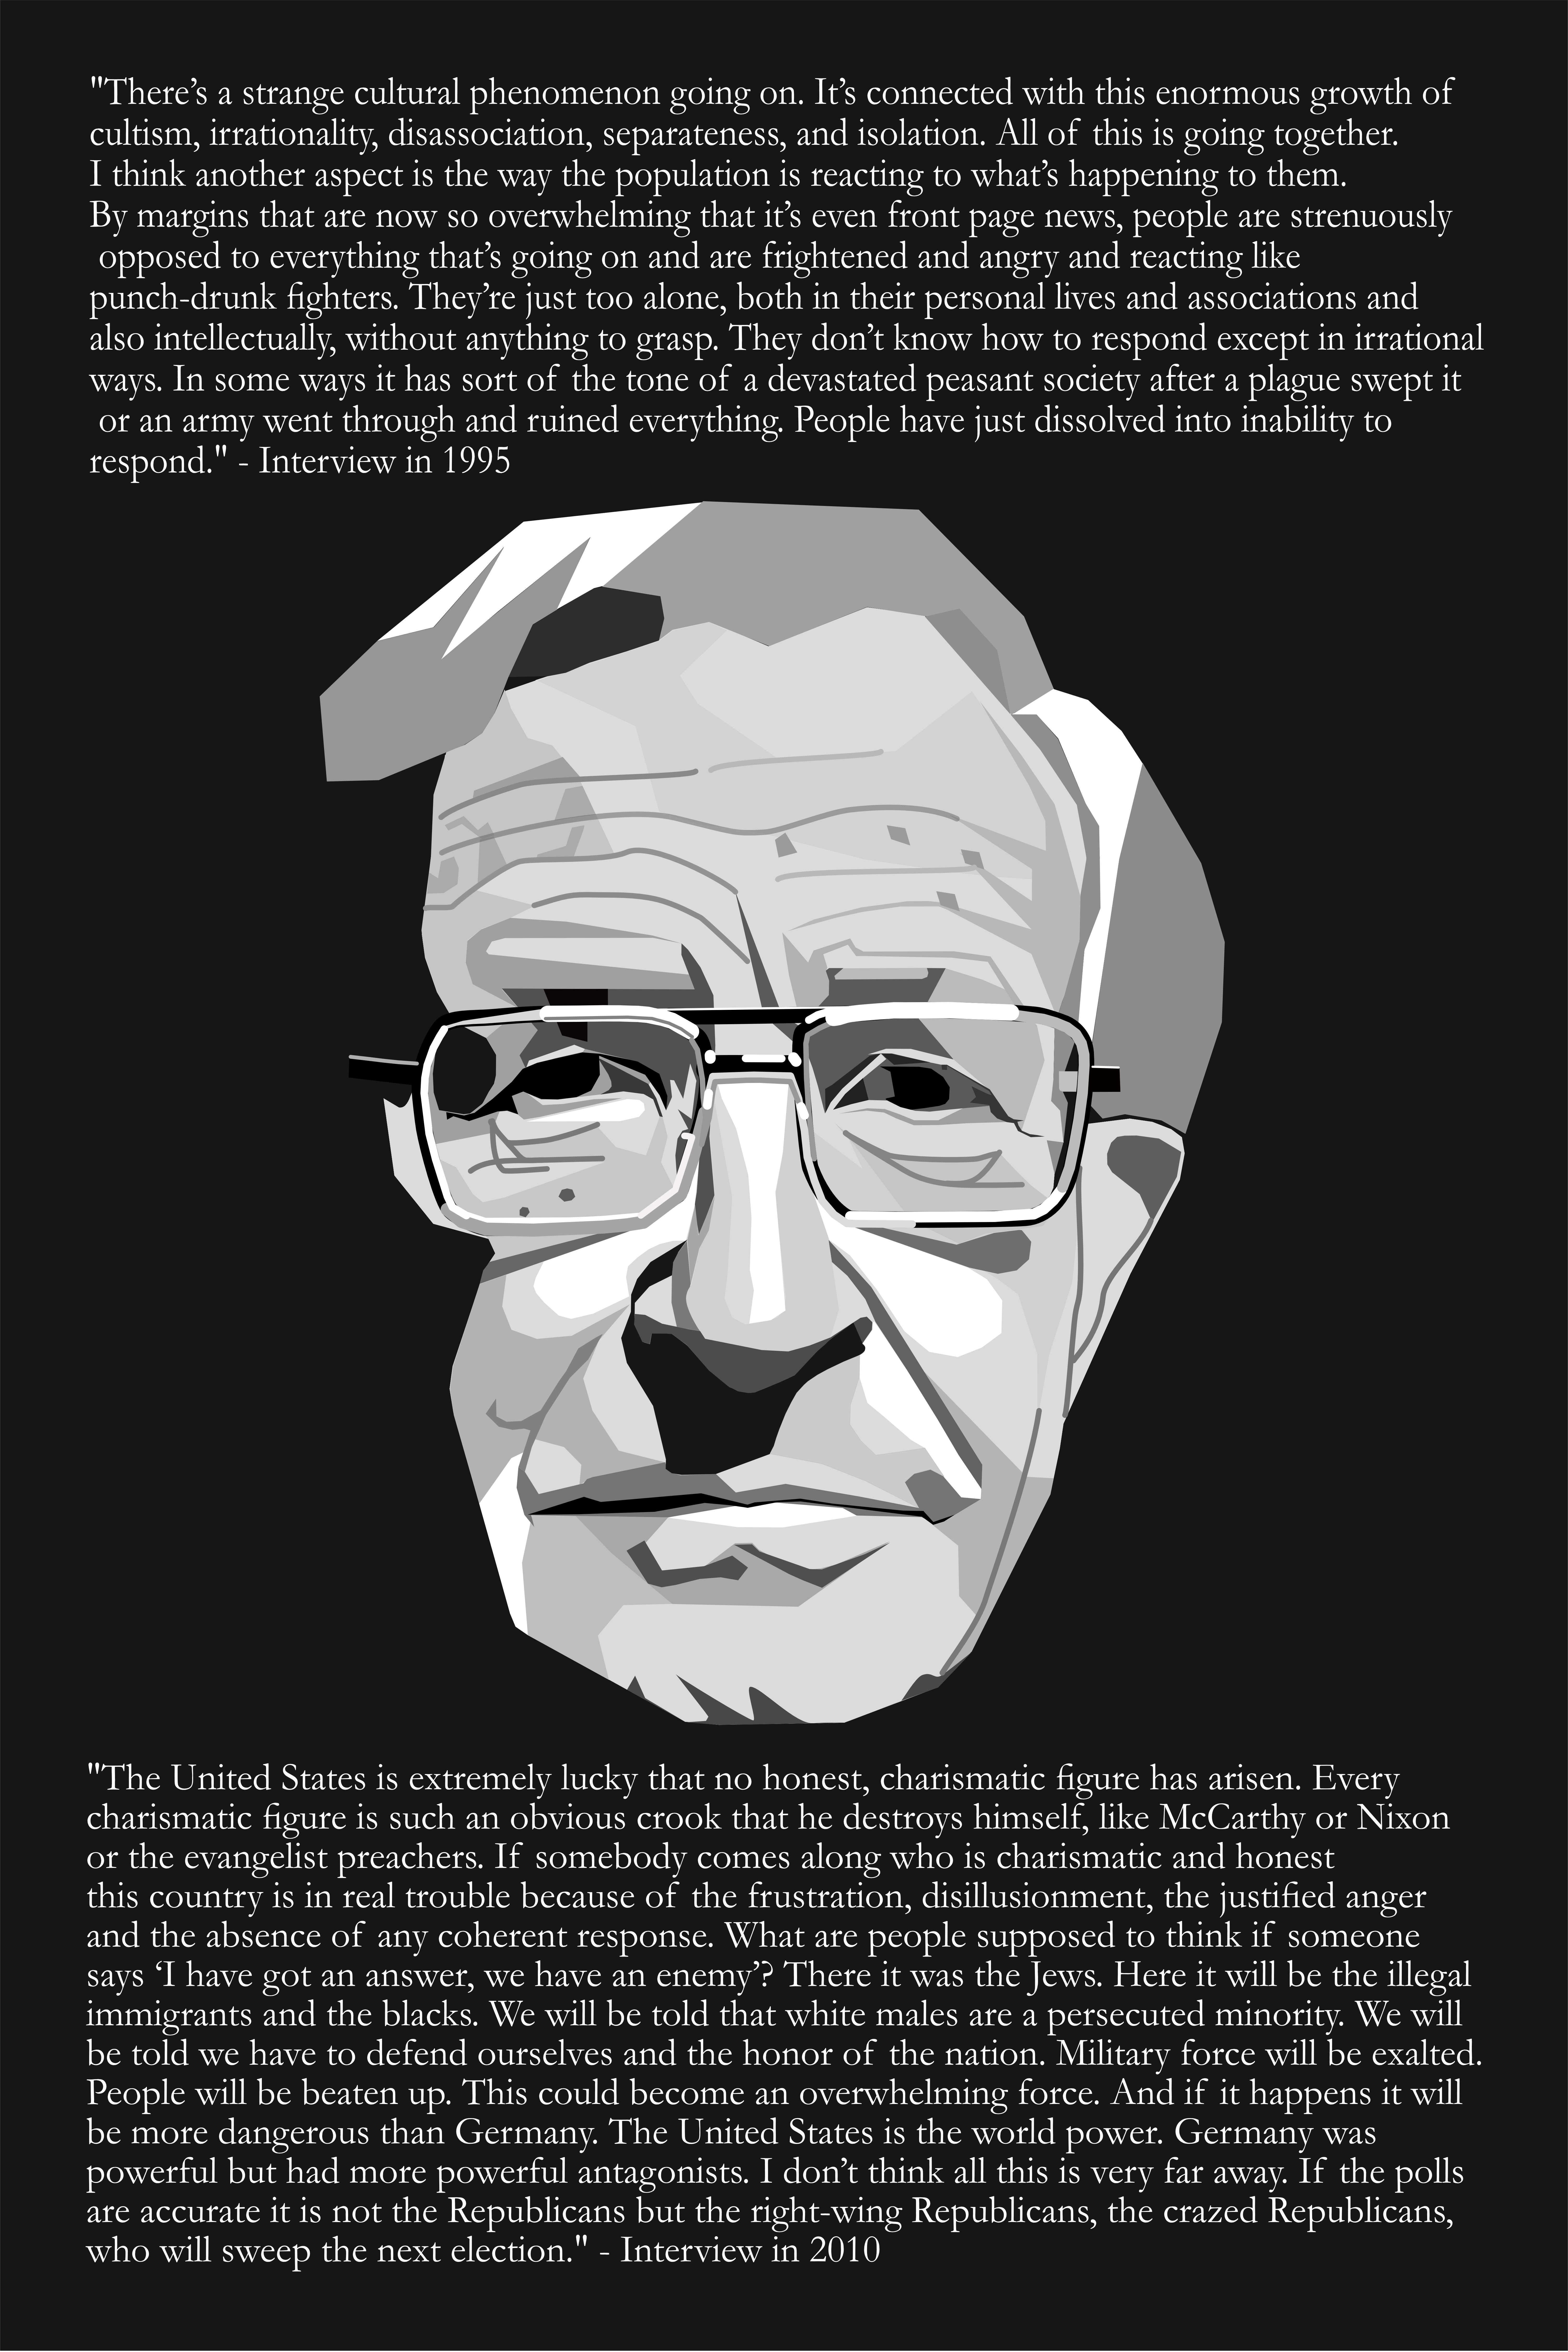 """[OC] """"There's a strange cultural phenomenon going on."""" – Noam Chomsky. Two quotes, from 1995 and 2010, that have aged well."""